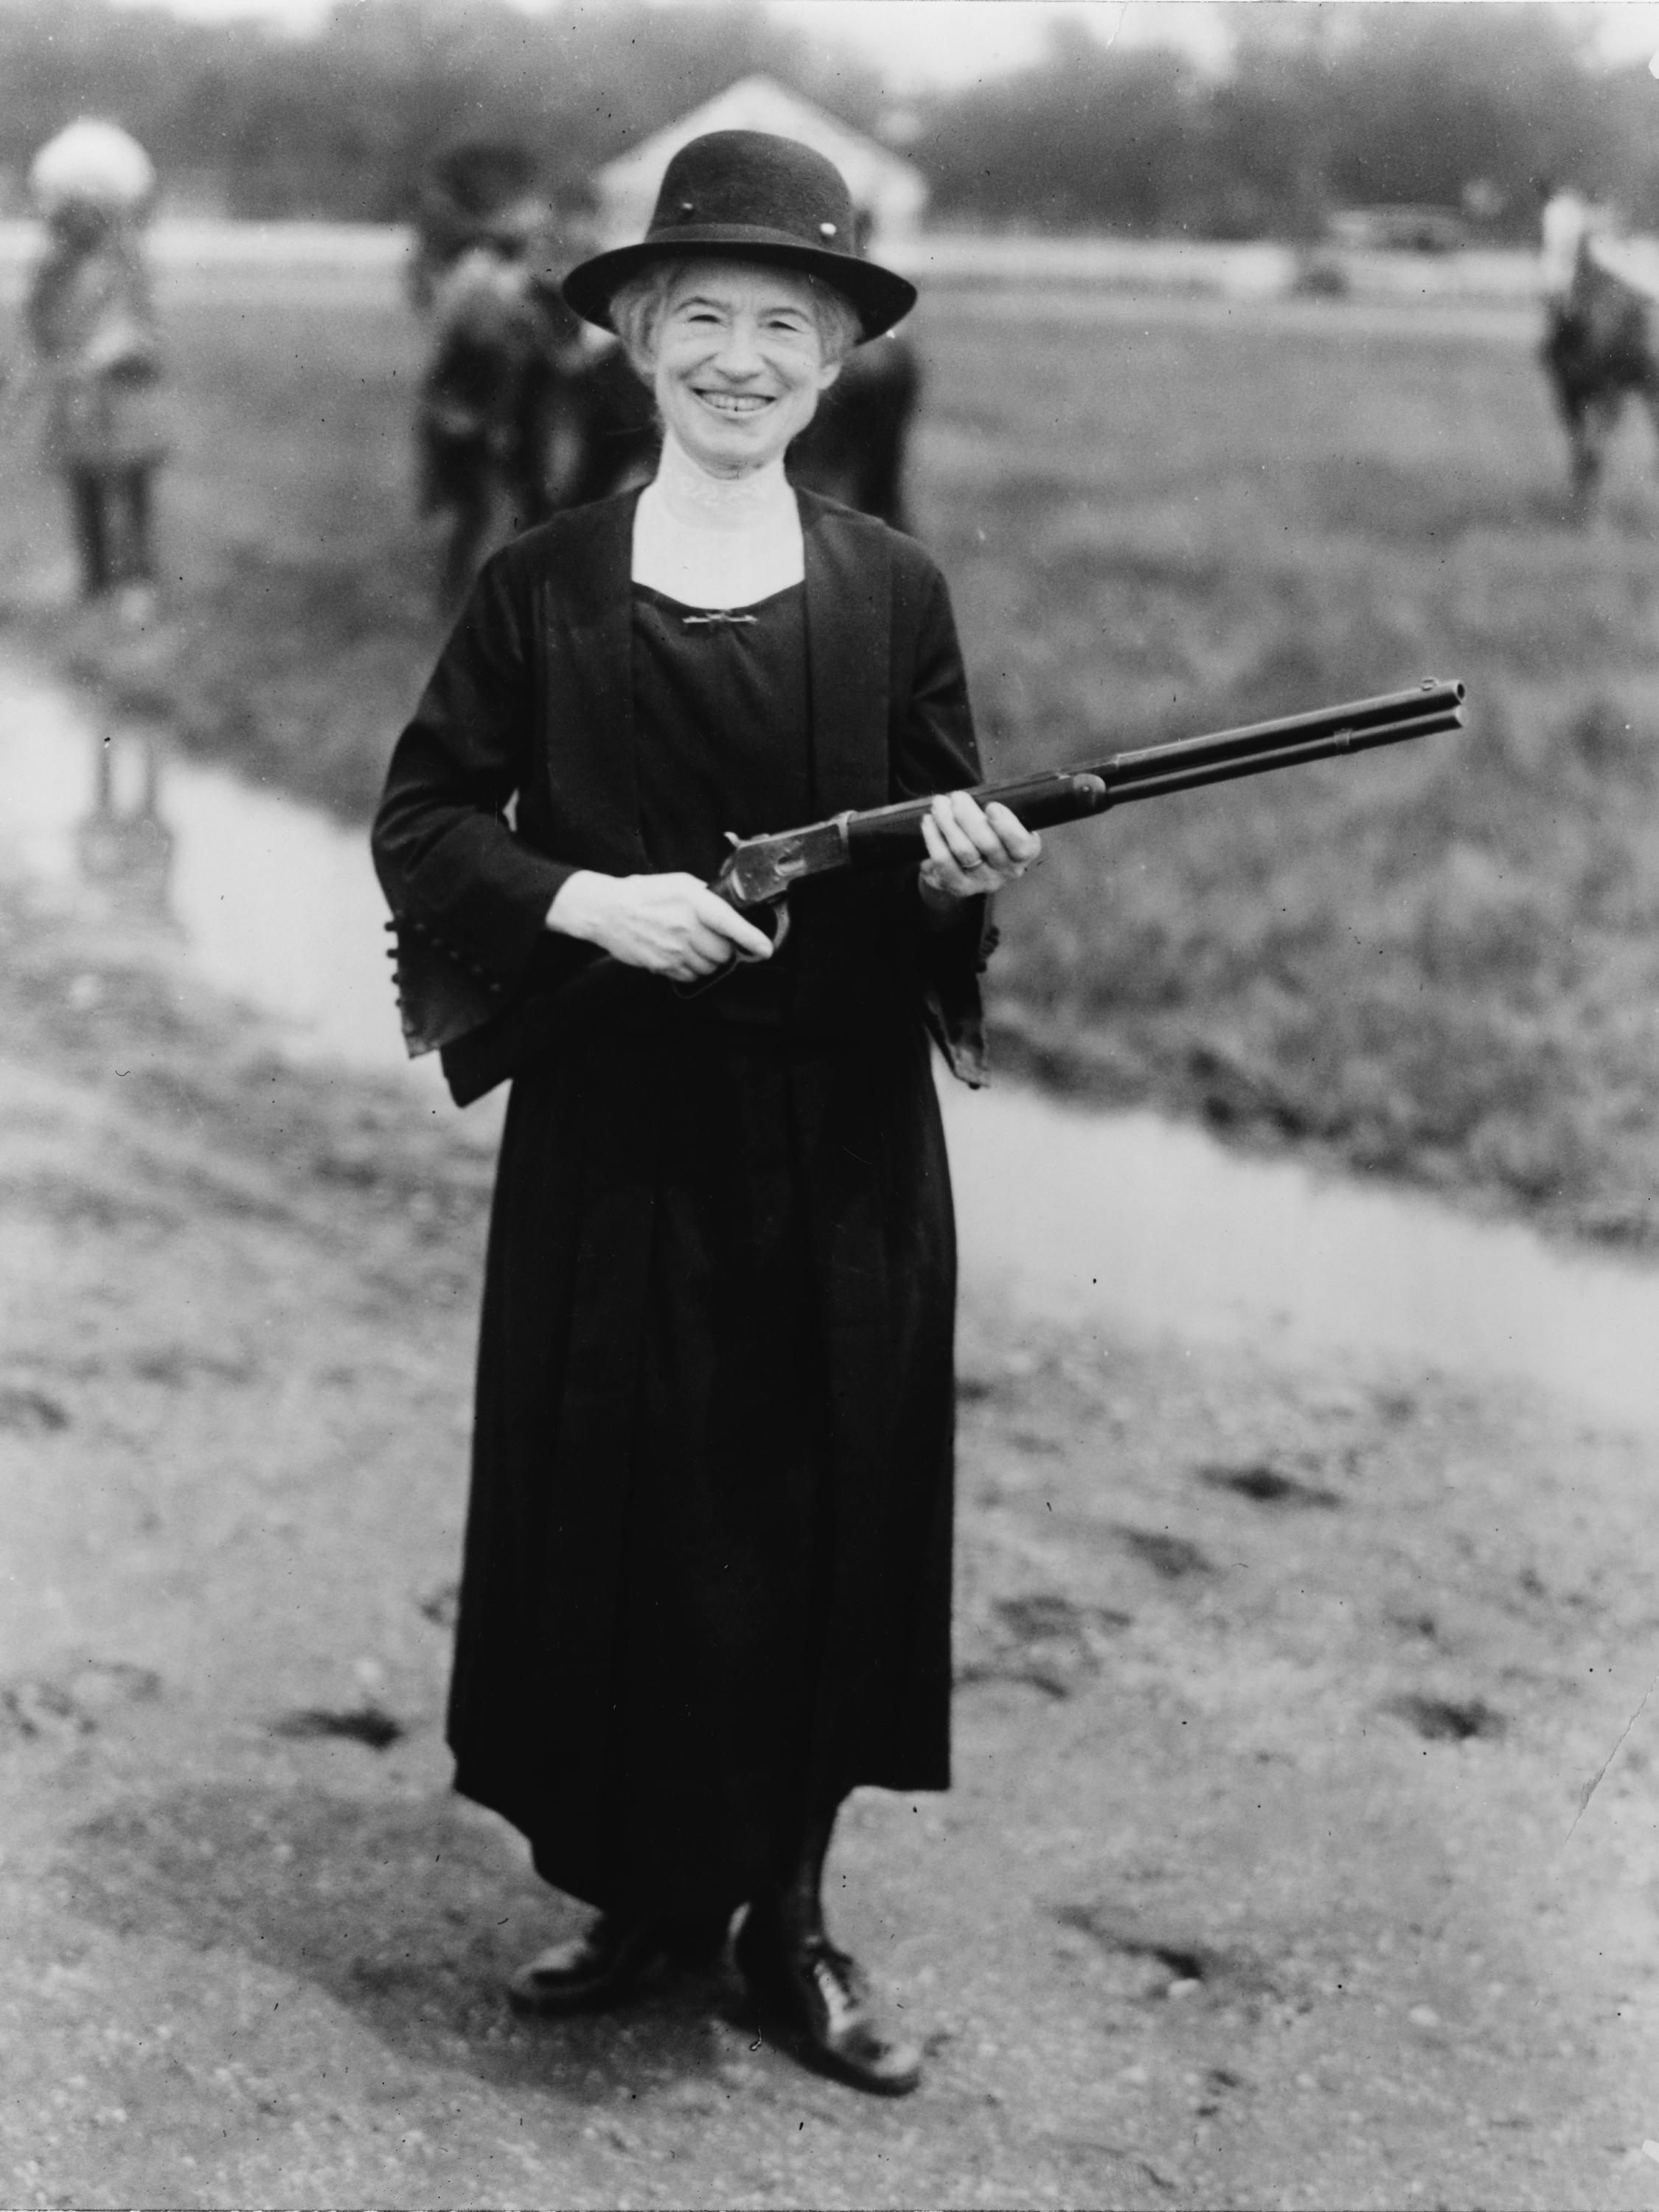 Annie Oakley with a gun given to her by Buffalo Bill, 1922 from the Library of Congress.